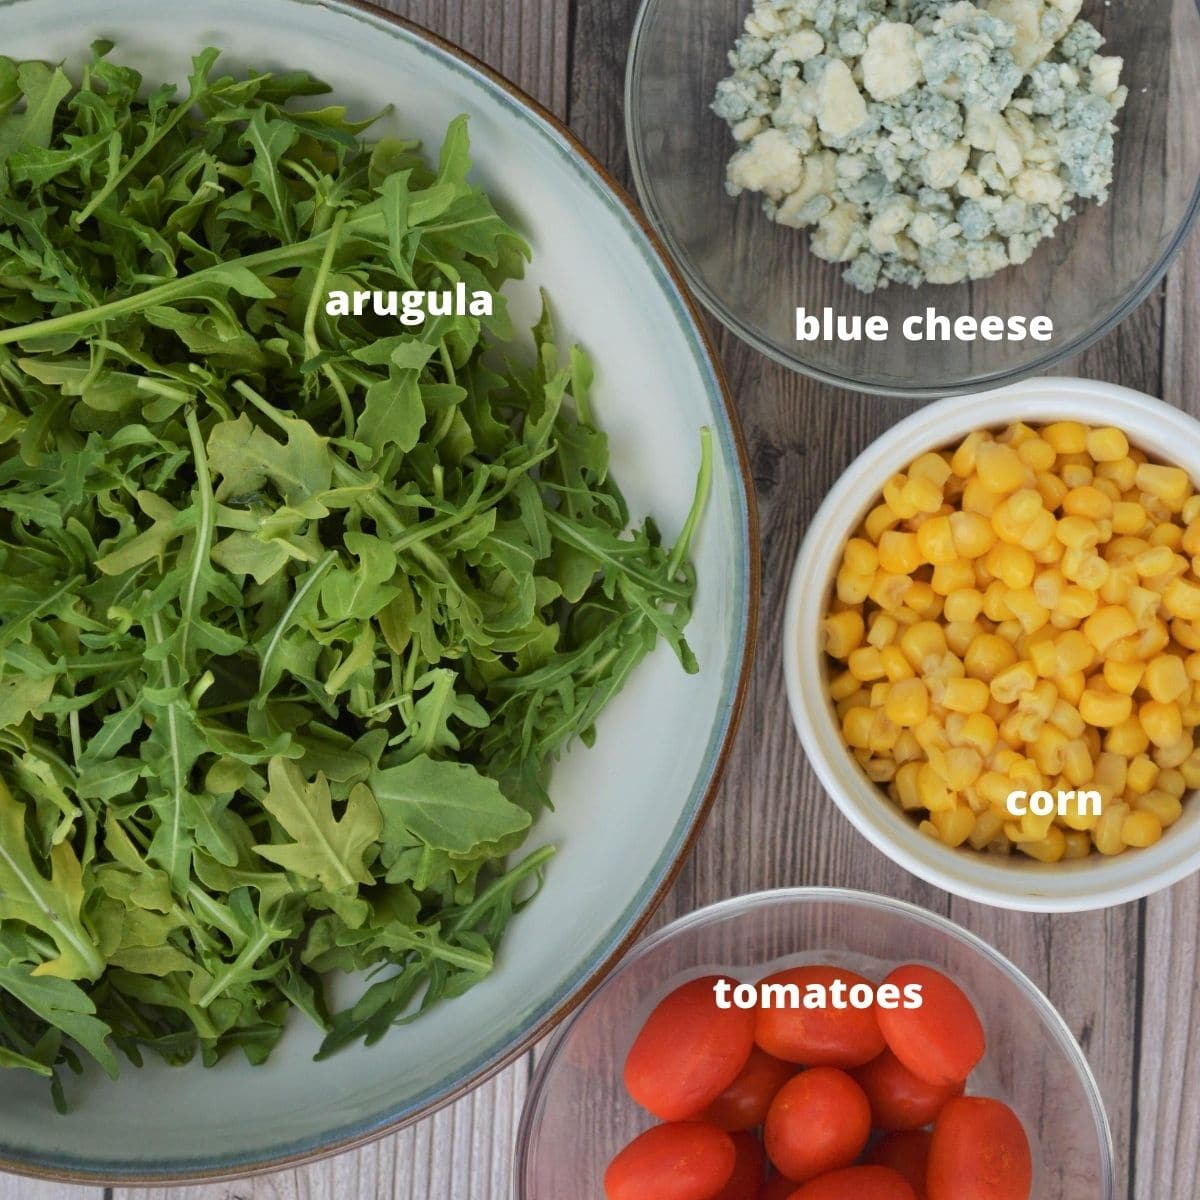 the ingredients for a salad, arugula, blue cheese crumbles, corn, and tomatoes.